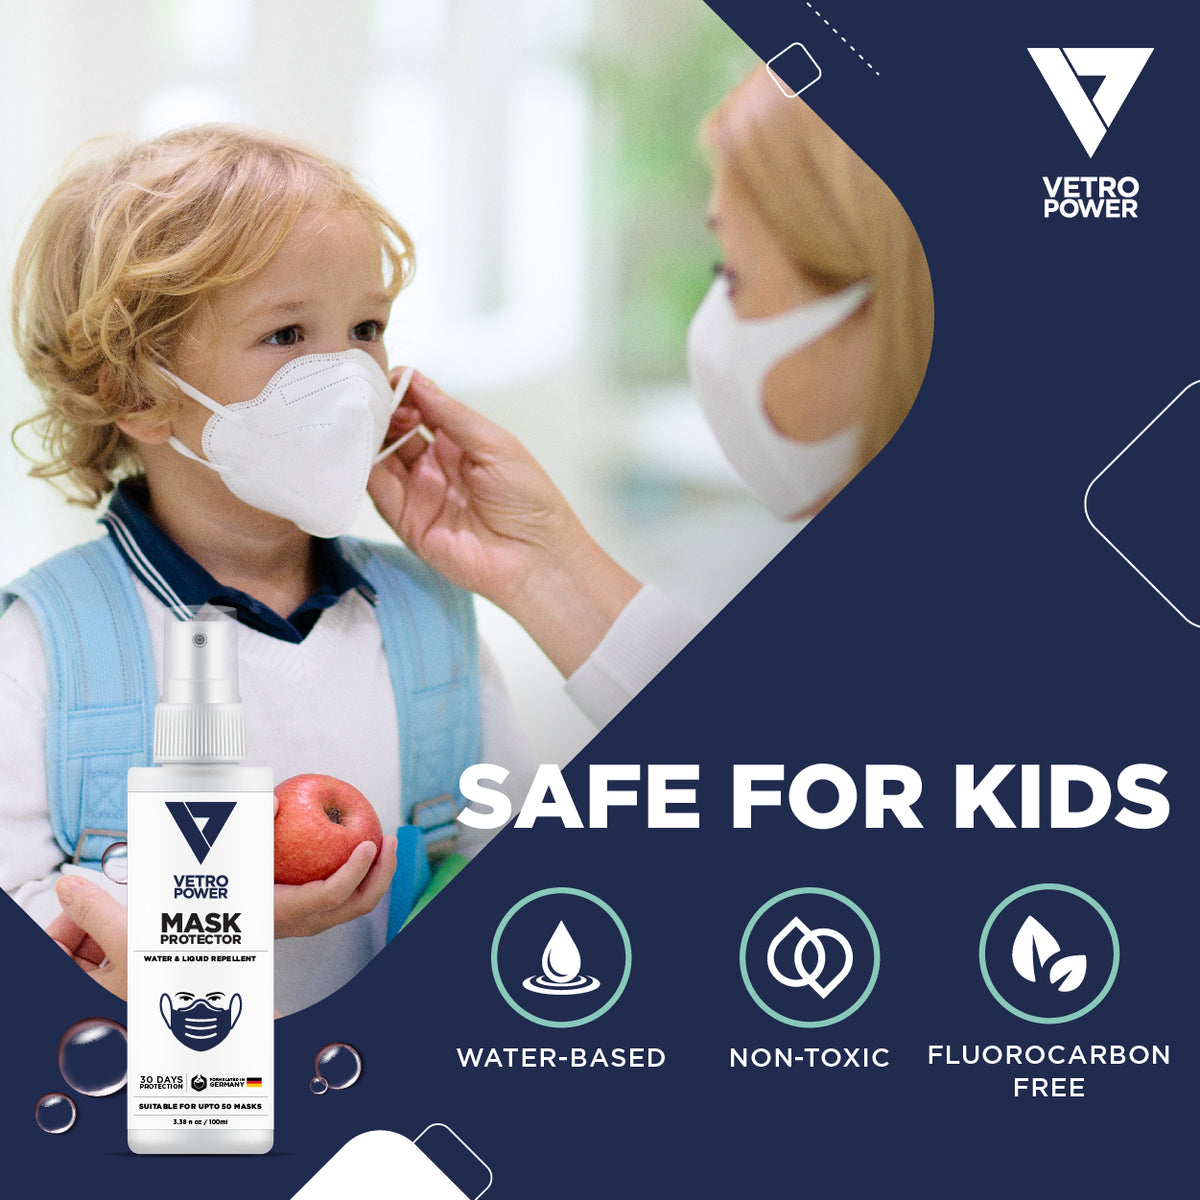 Vetro Power Nanotechnology Mask Protector 100ml Safe For Kids